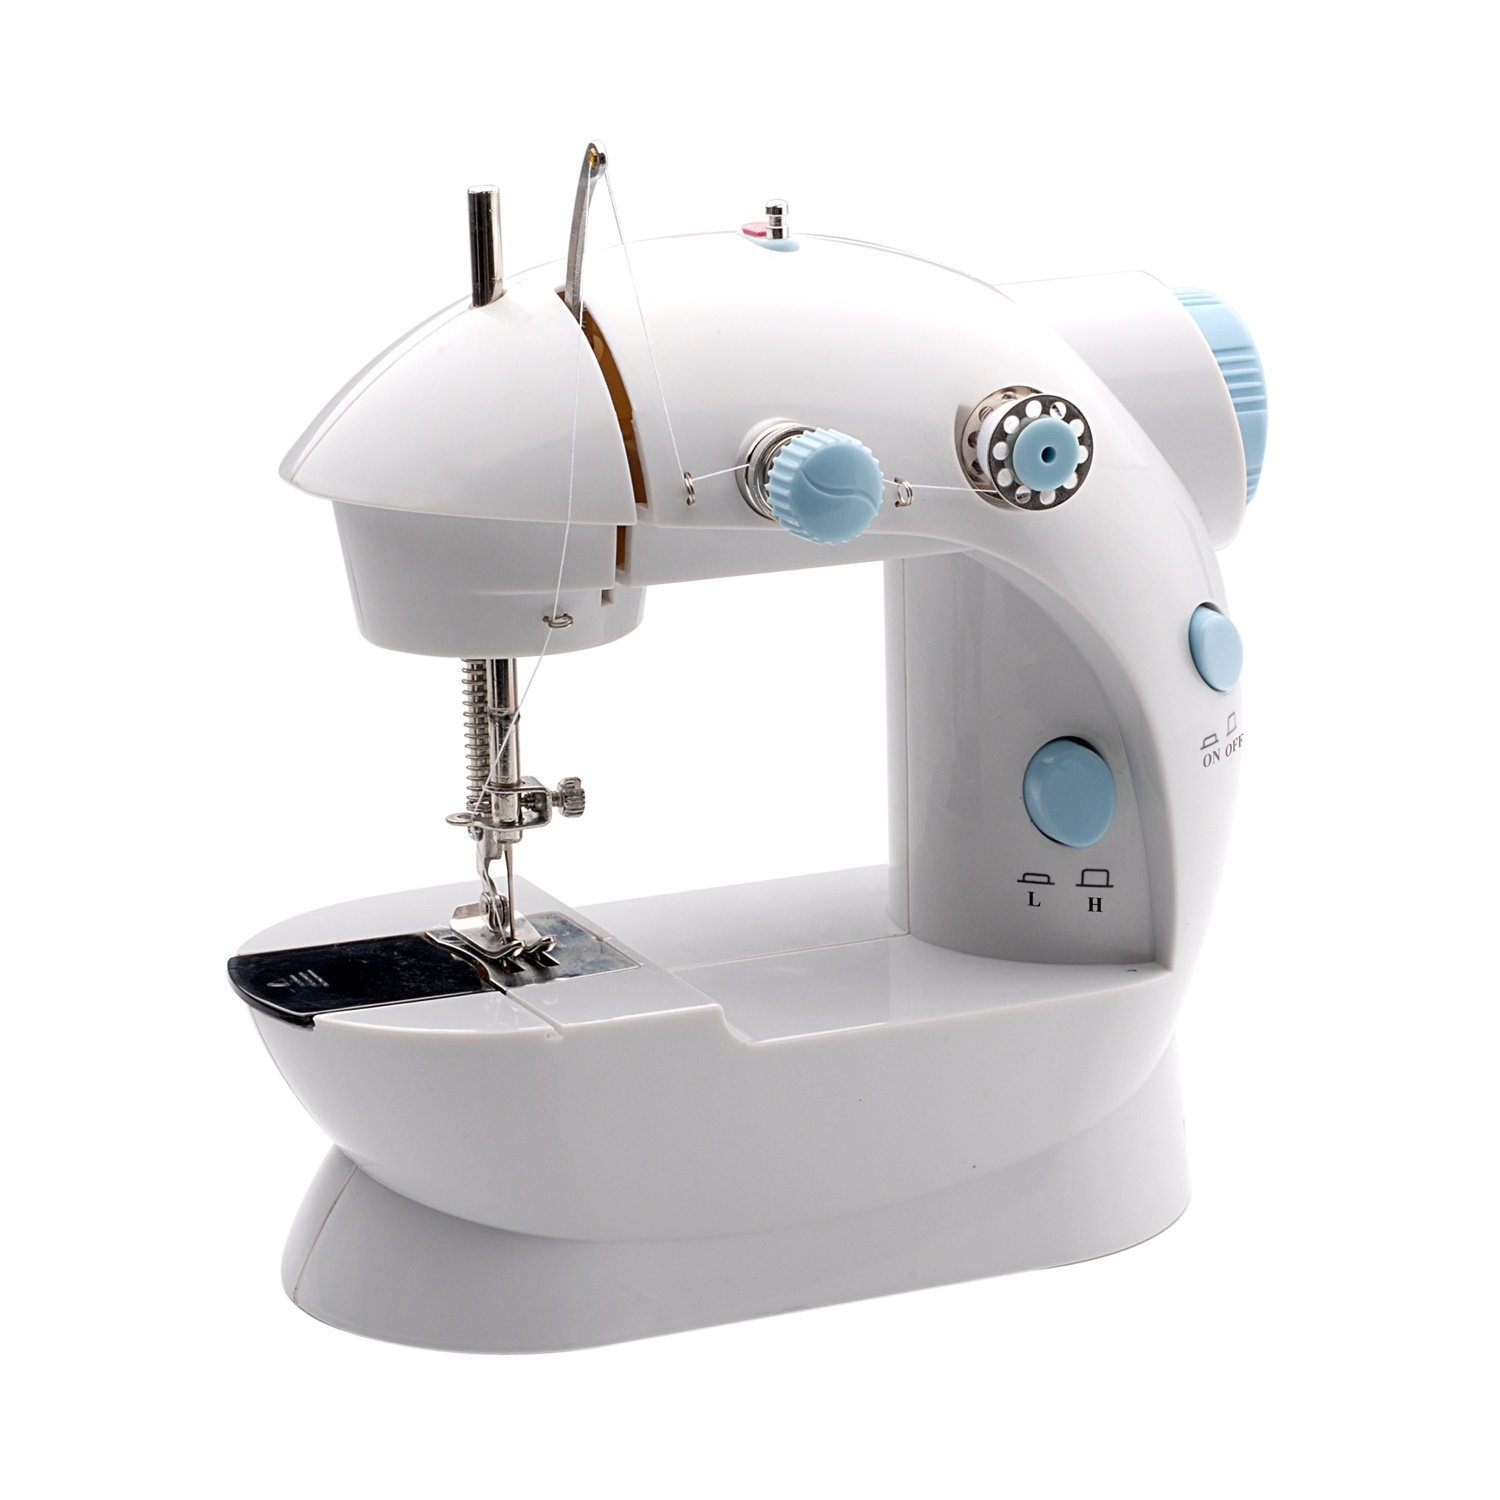 Michley-Tivax Lil' Sew & Sew Mini Sewing Machine